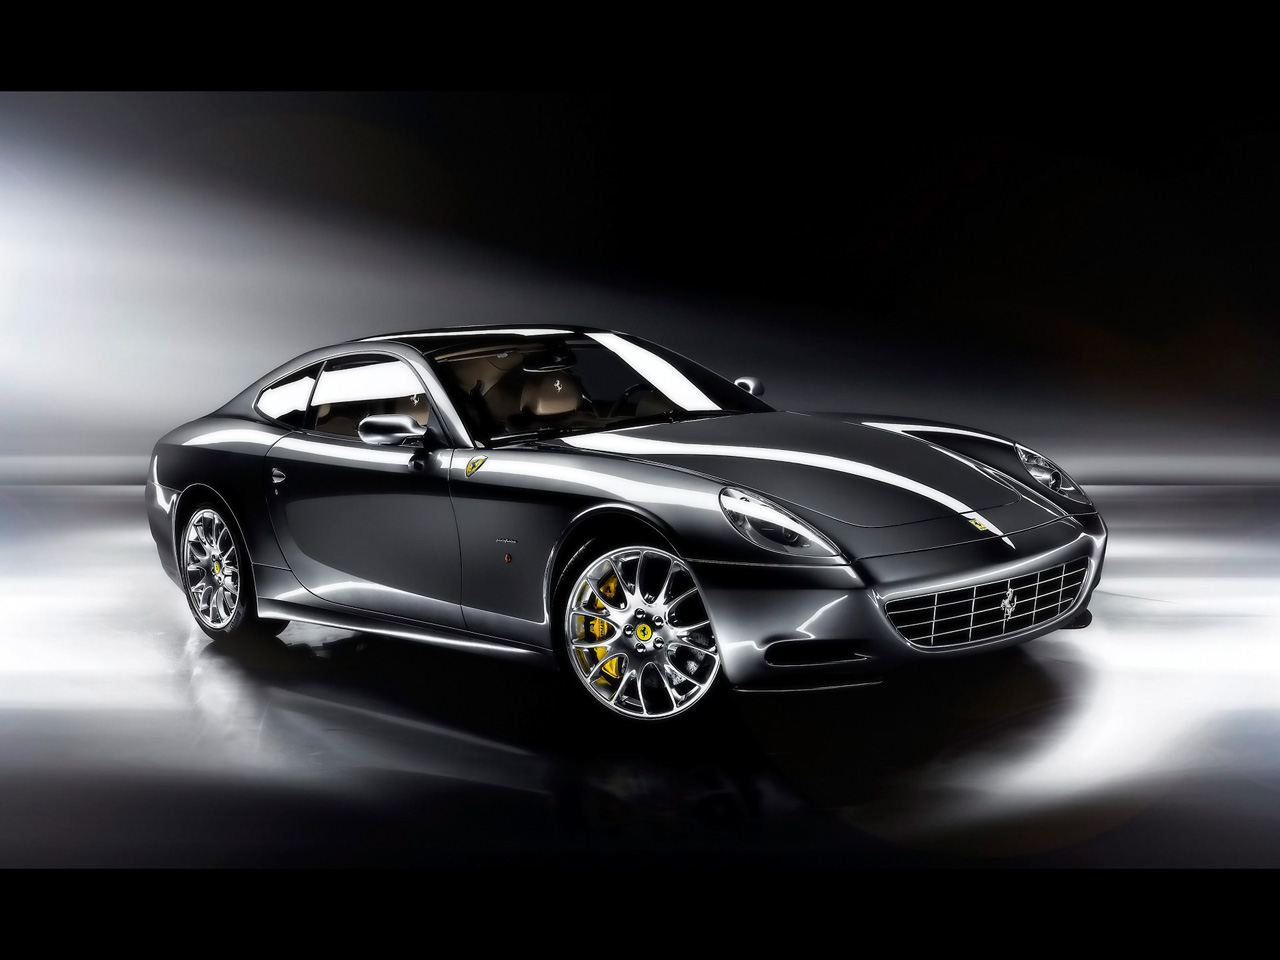 2009 ferrari 612 scaglietti sport cars and motorcycle news. Black Bedroom Furniture Sets. Home Design Ideas